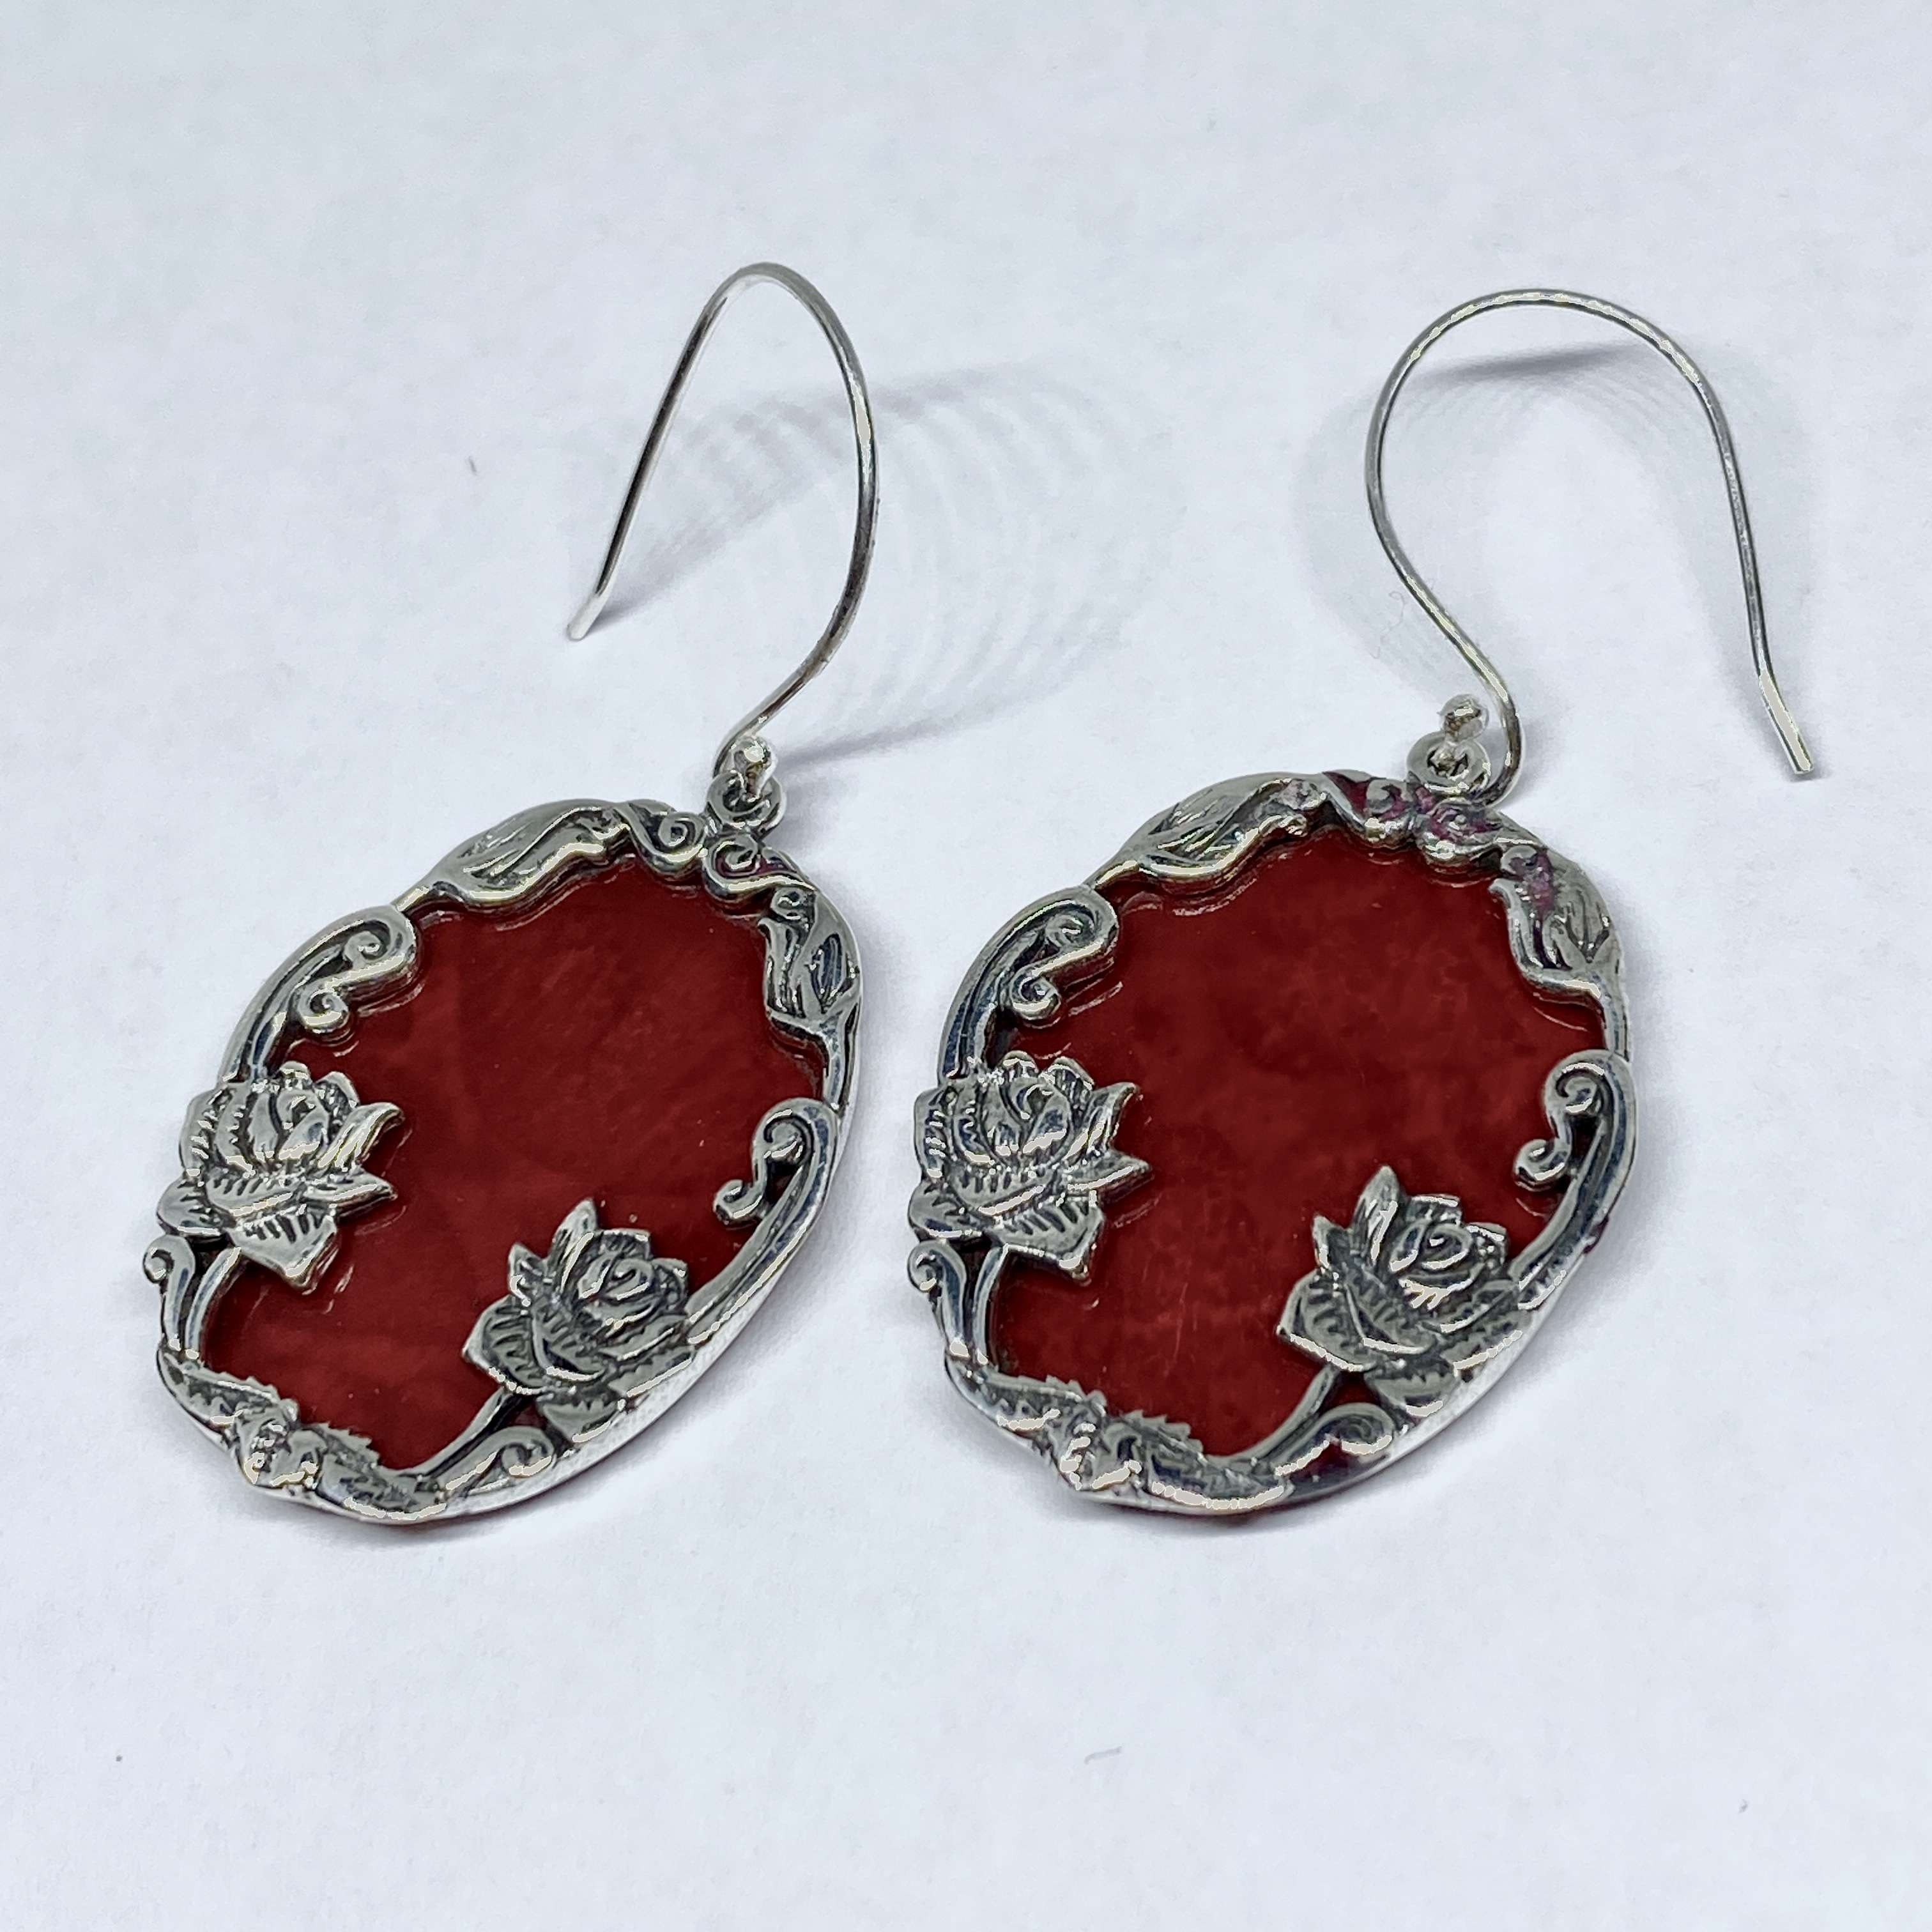 (HANDMADE 925 BALI SILVER DAISY LOTUS EARRINGS WITH CORAL)